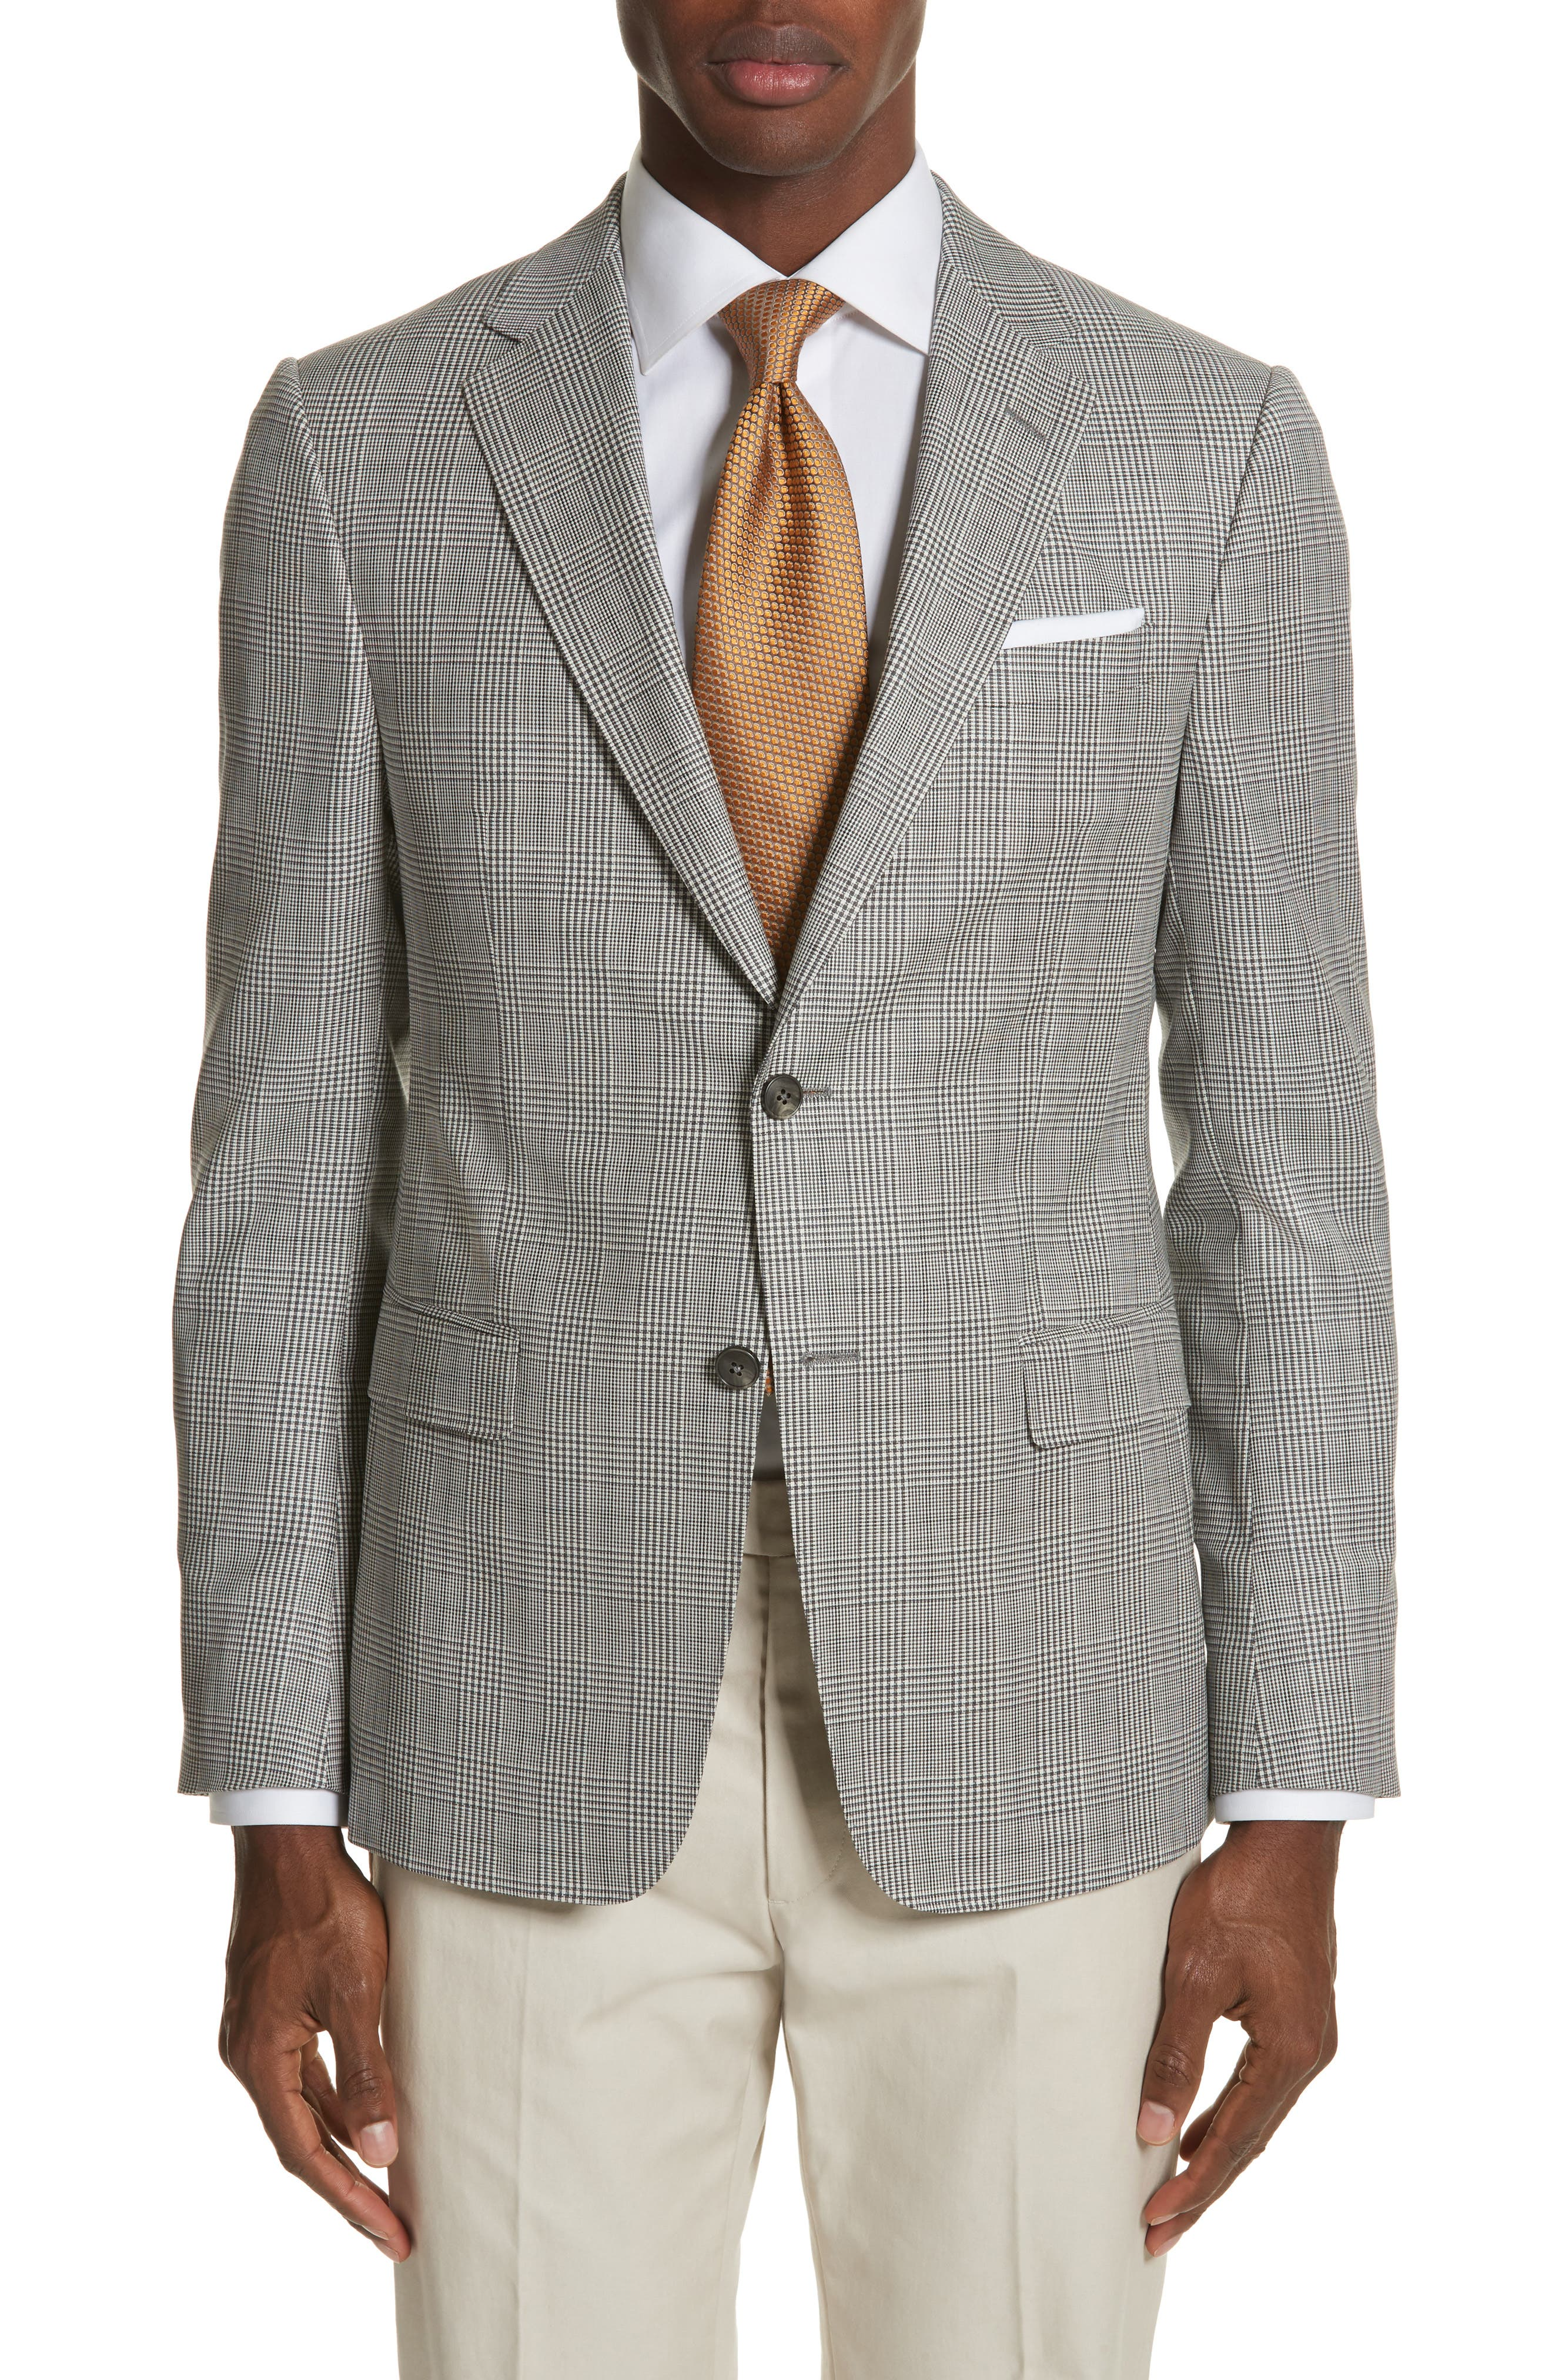 Alternate Image 1 Selected - Z Zegna Classic Fit Plaid Wool Sport Coat